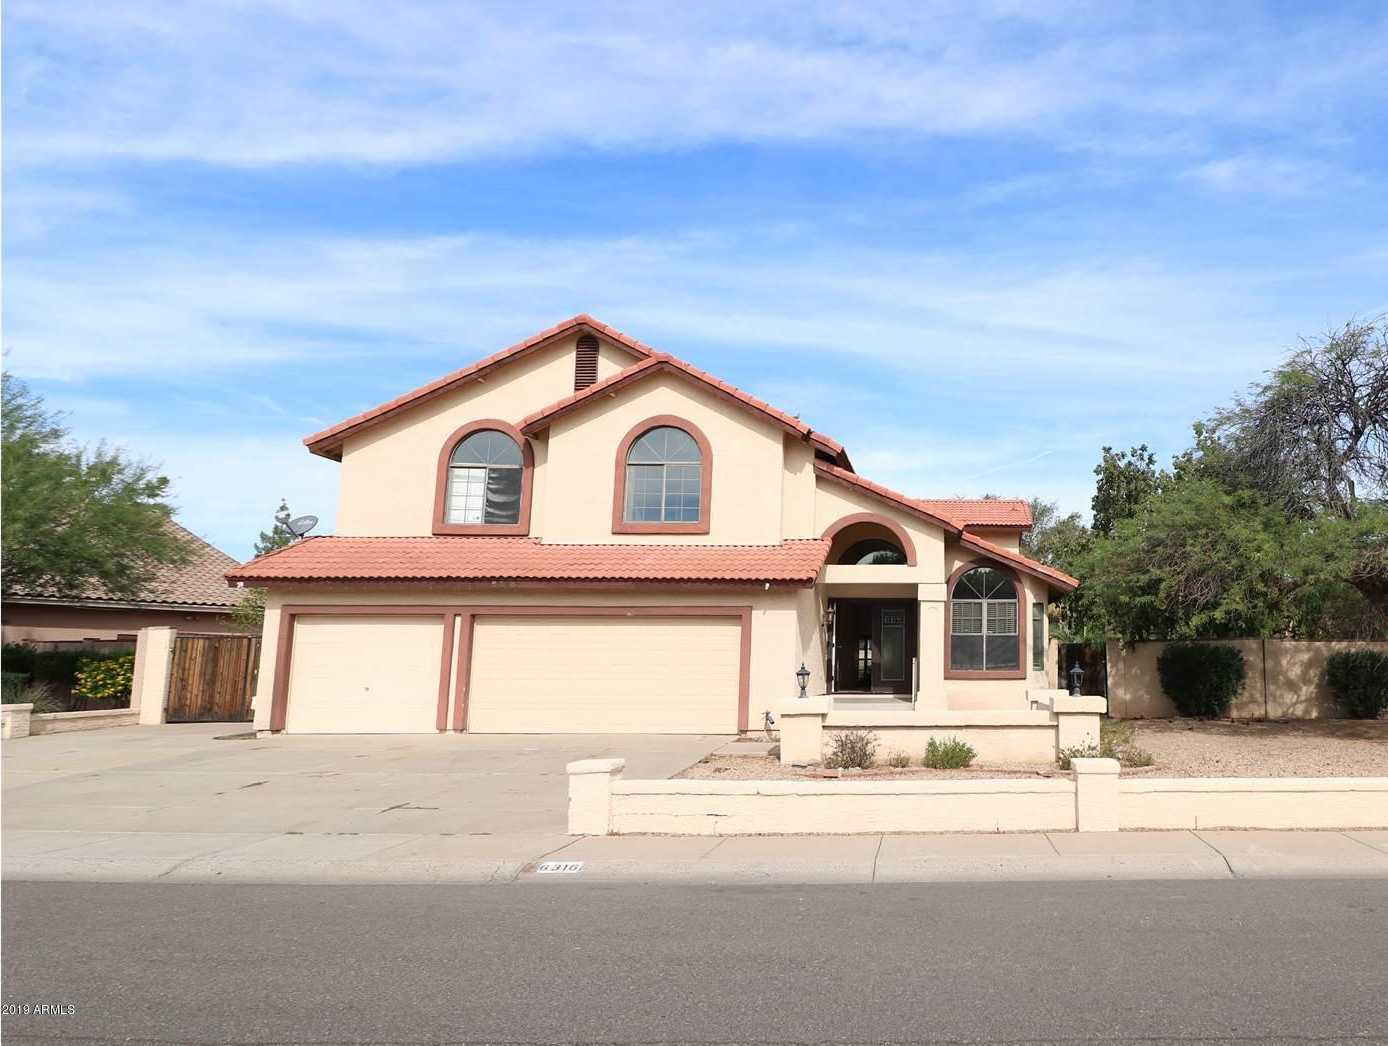 $357,500 - 5Br/3Ba - Home for Sale in Quail Thunderbird Meadow Phase 2 Lot 73-120, Glendale